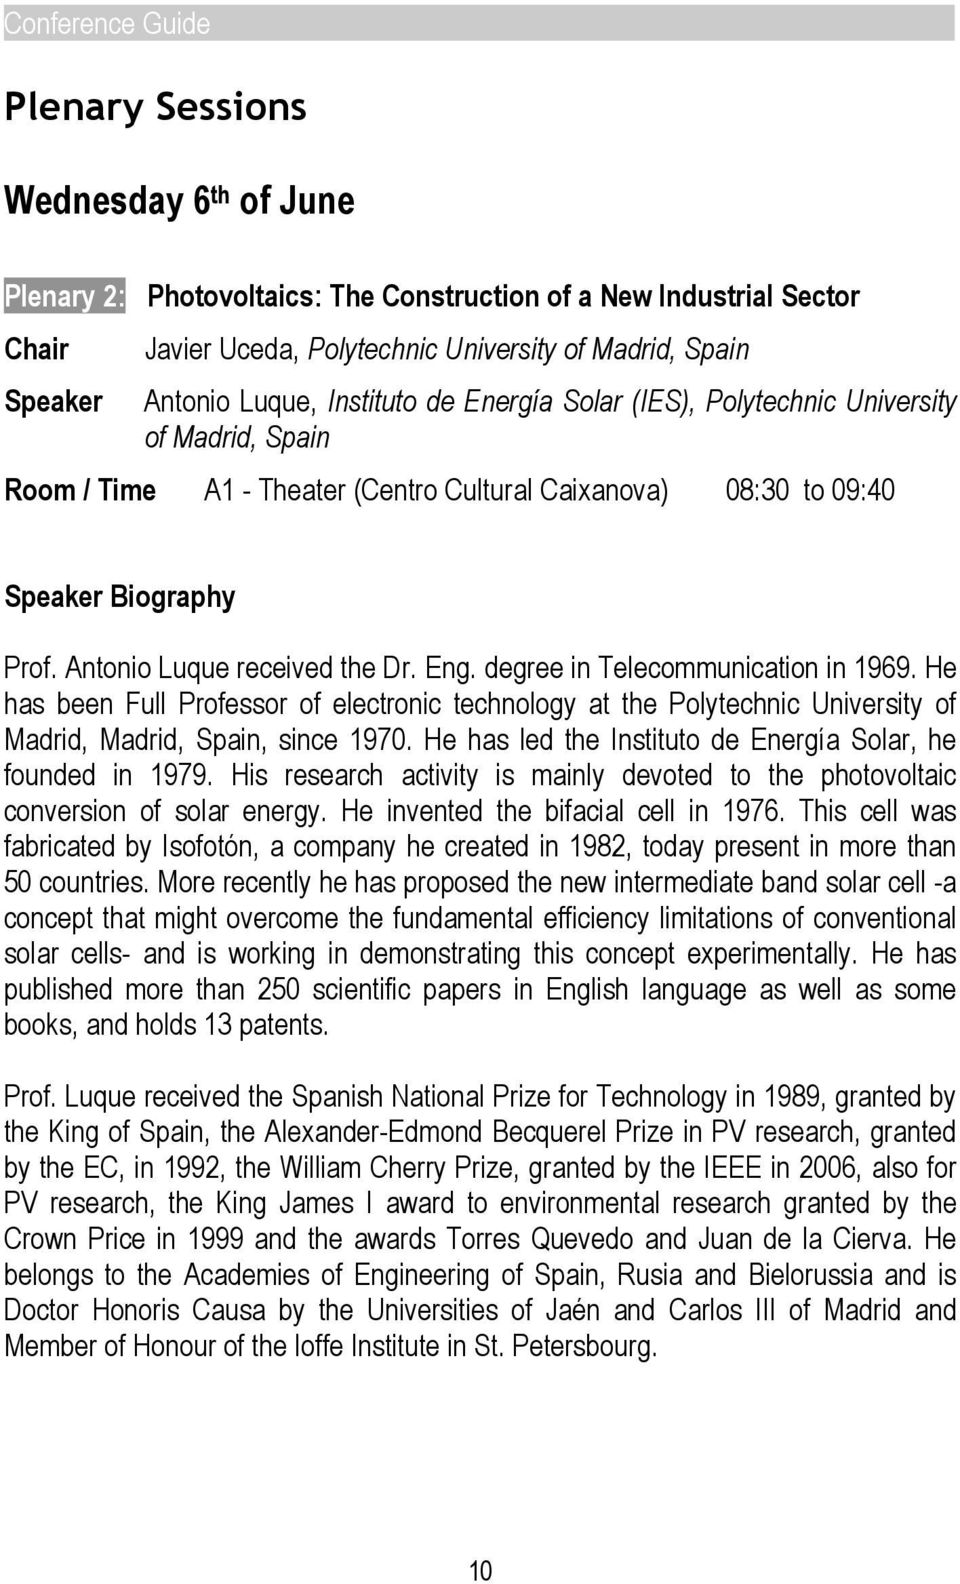 Instituto de Energía Solar (IES), Polytechnic University of Madrid, Spain Room / Time A1 - Theater (Centro Cultural Caixanova) 08:30 to 09:40 Speaker Biography Prof. Antonio Luque received the Dr.